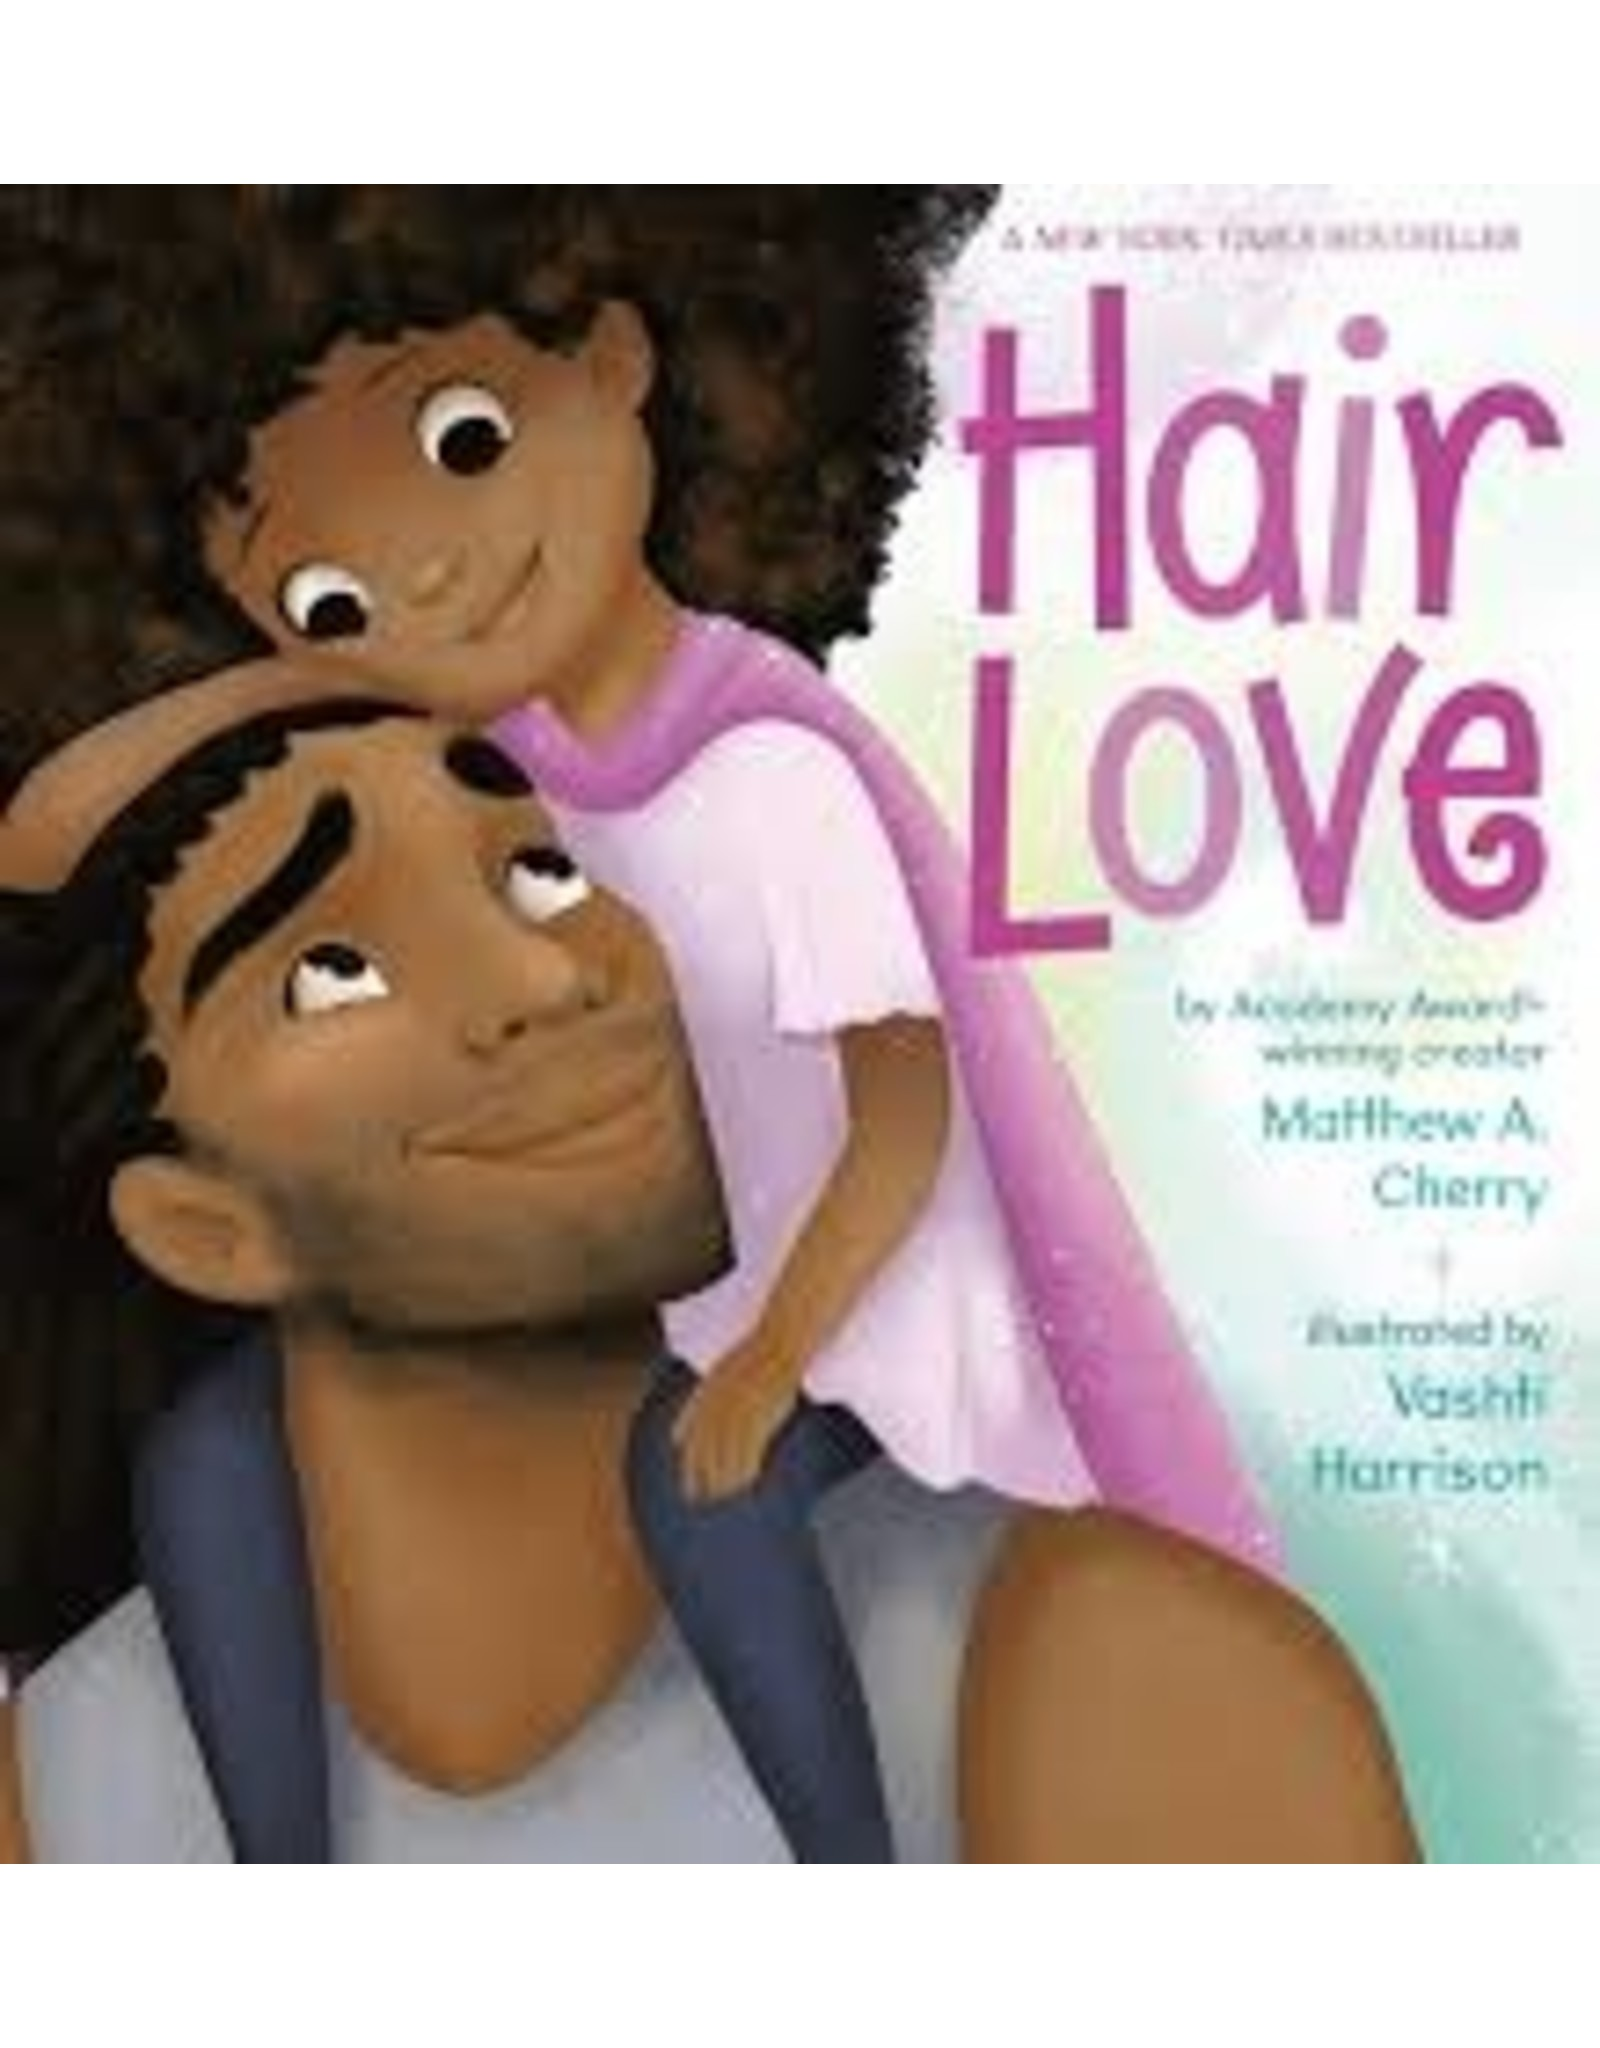 Books Hair Love by Matthew A. Cherry Illustrated by Vashti Harrison